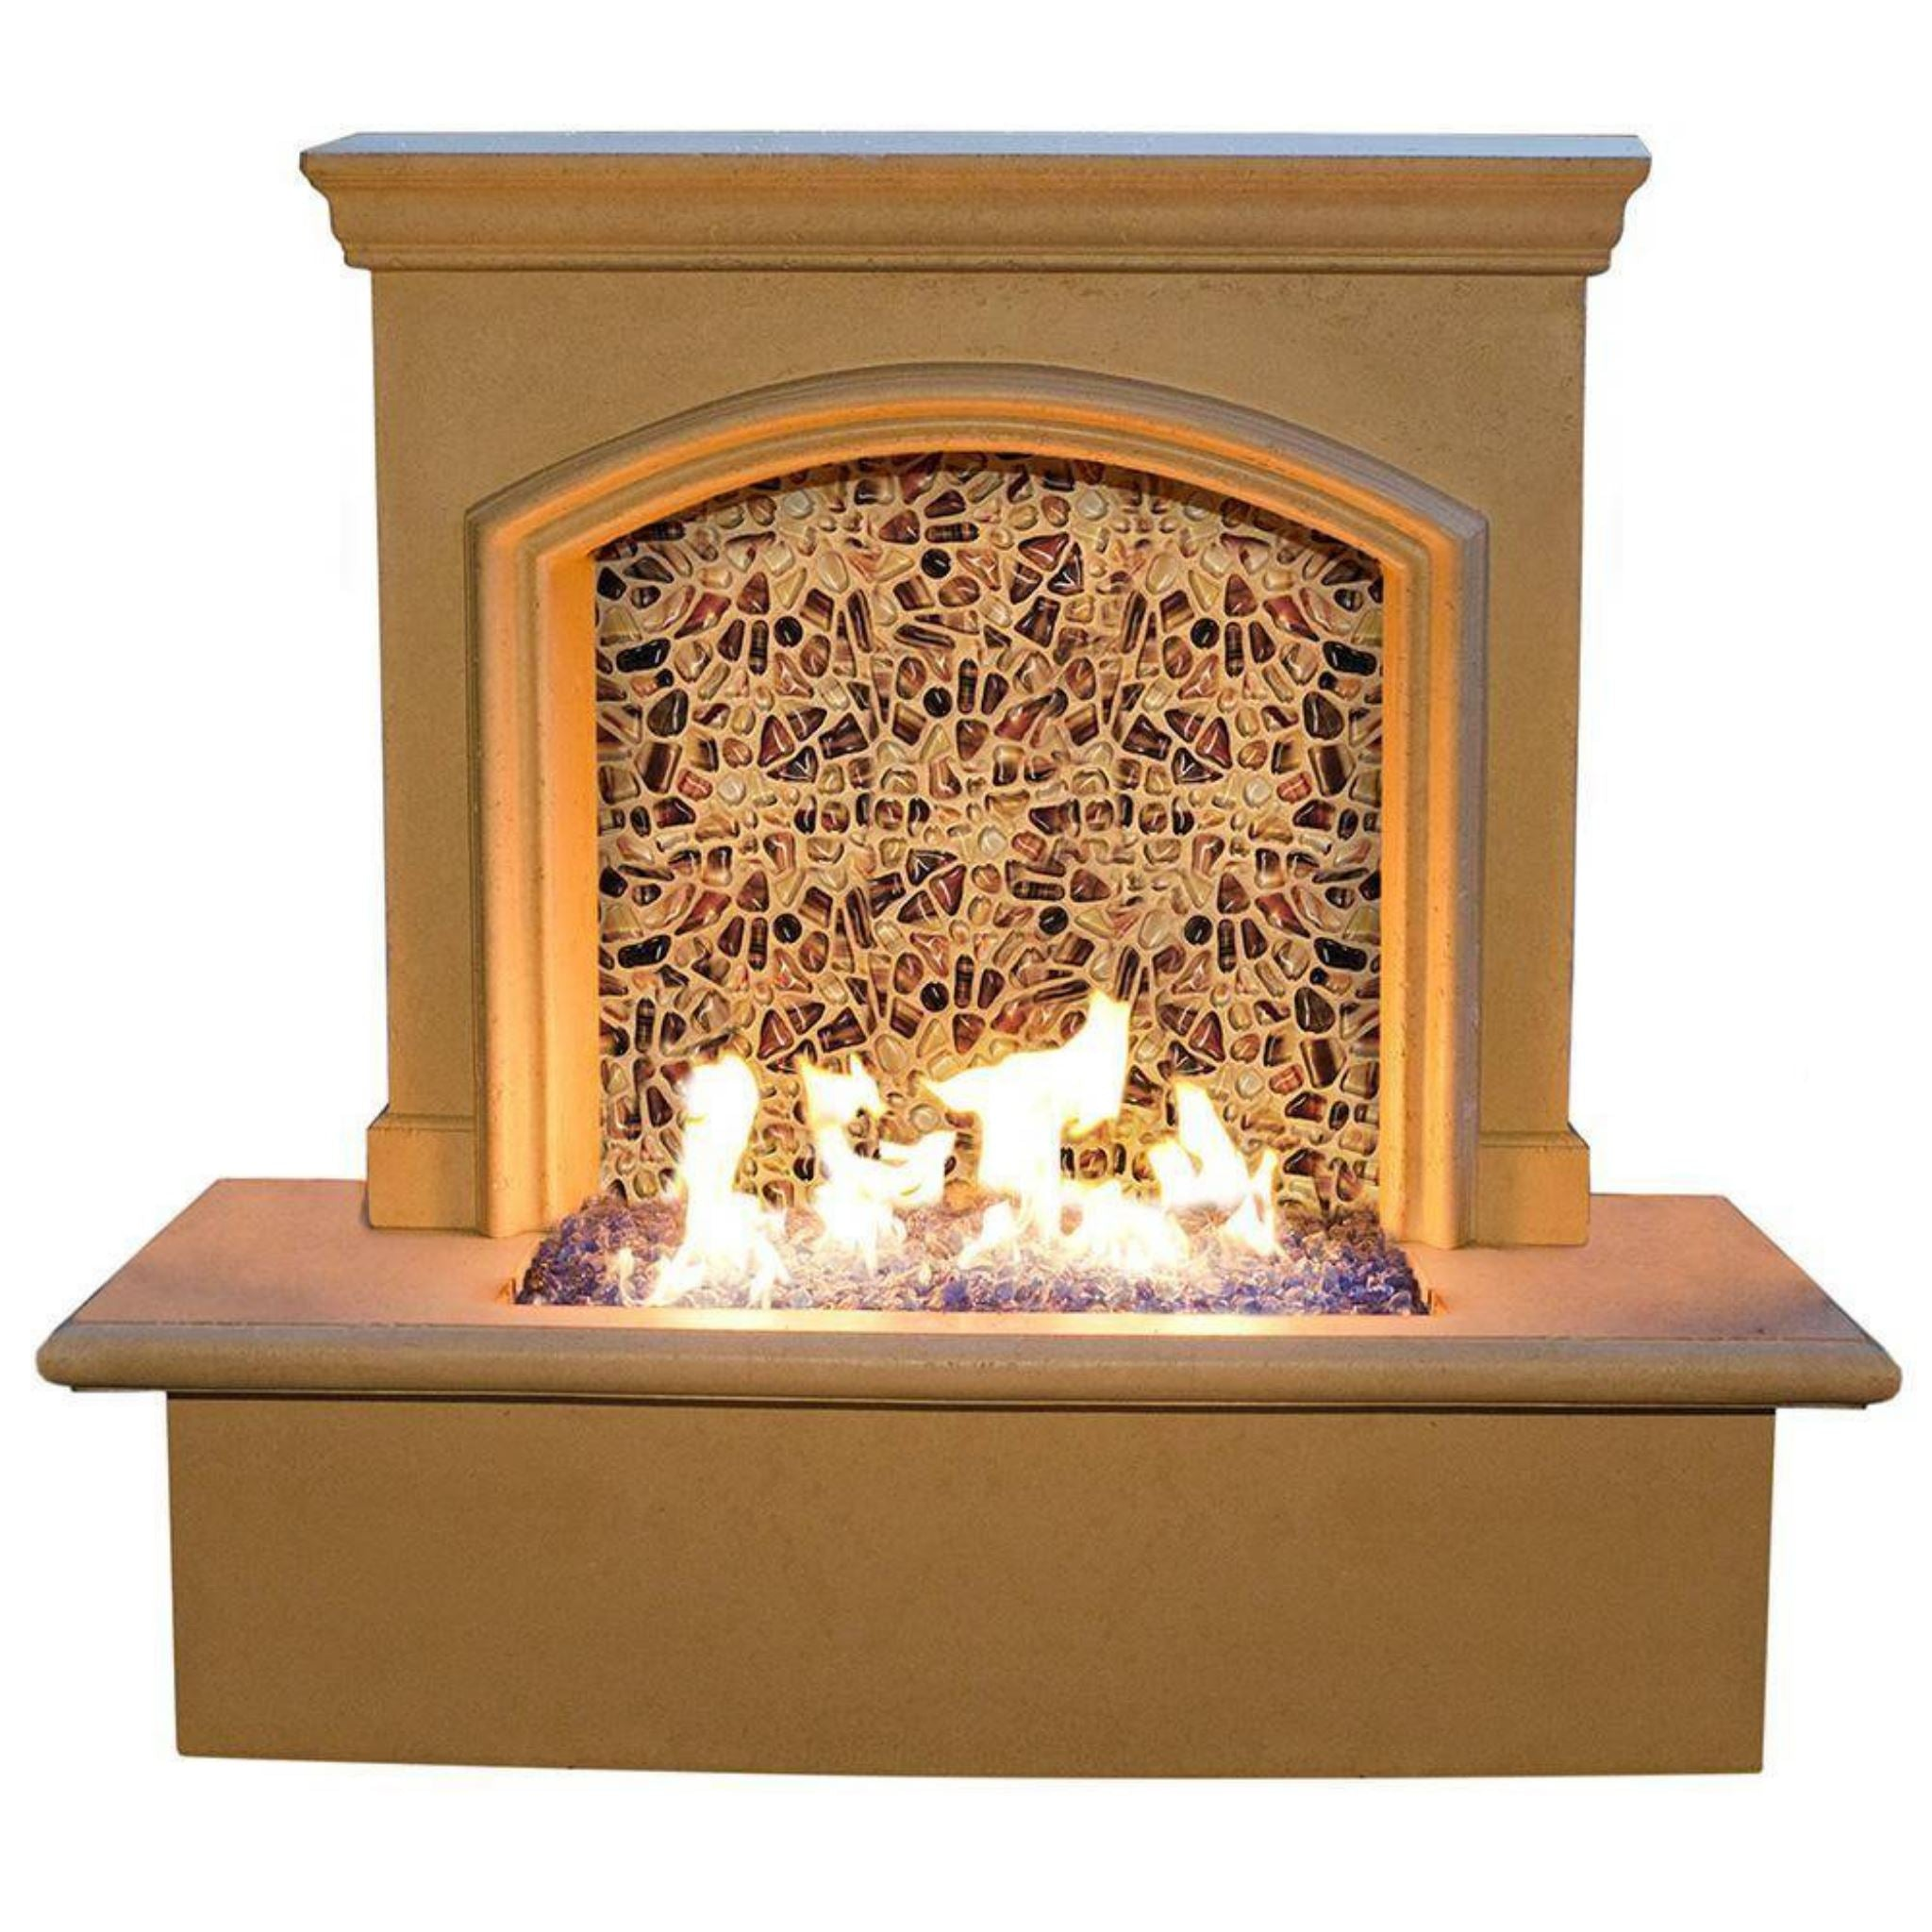 American Fyre Designs Small Firefall Artisan Glass Edition Fireplace 690-BA-52-V5NC Fireplaces American Fyre Design